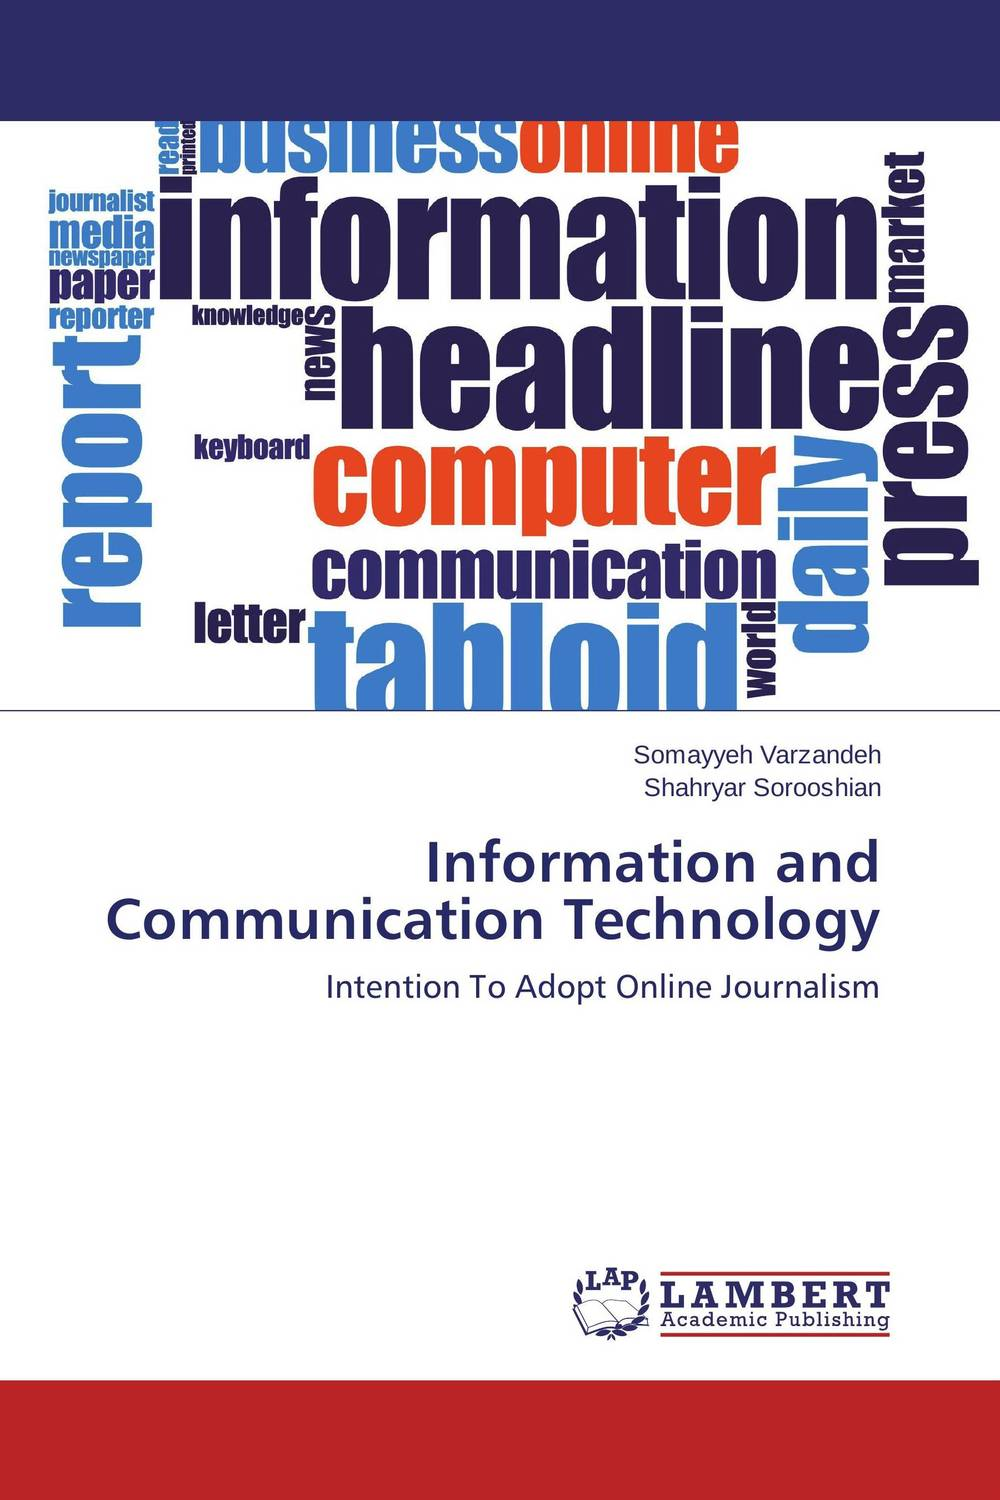 Information and Communication Technology journalists and online communities